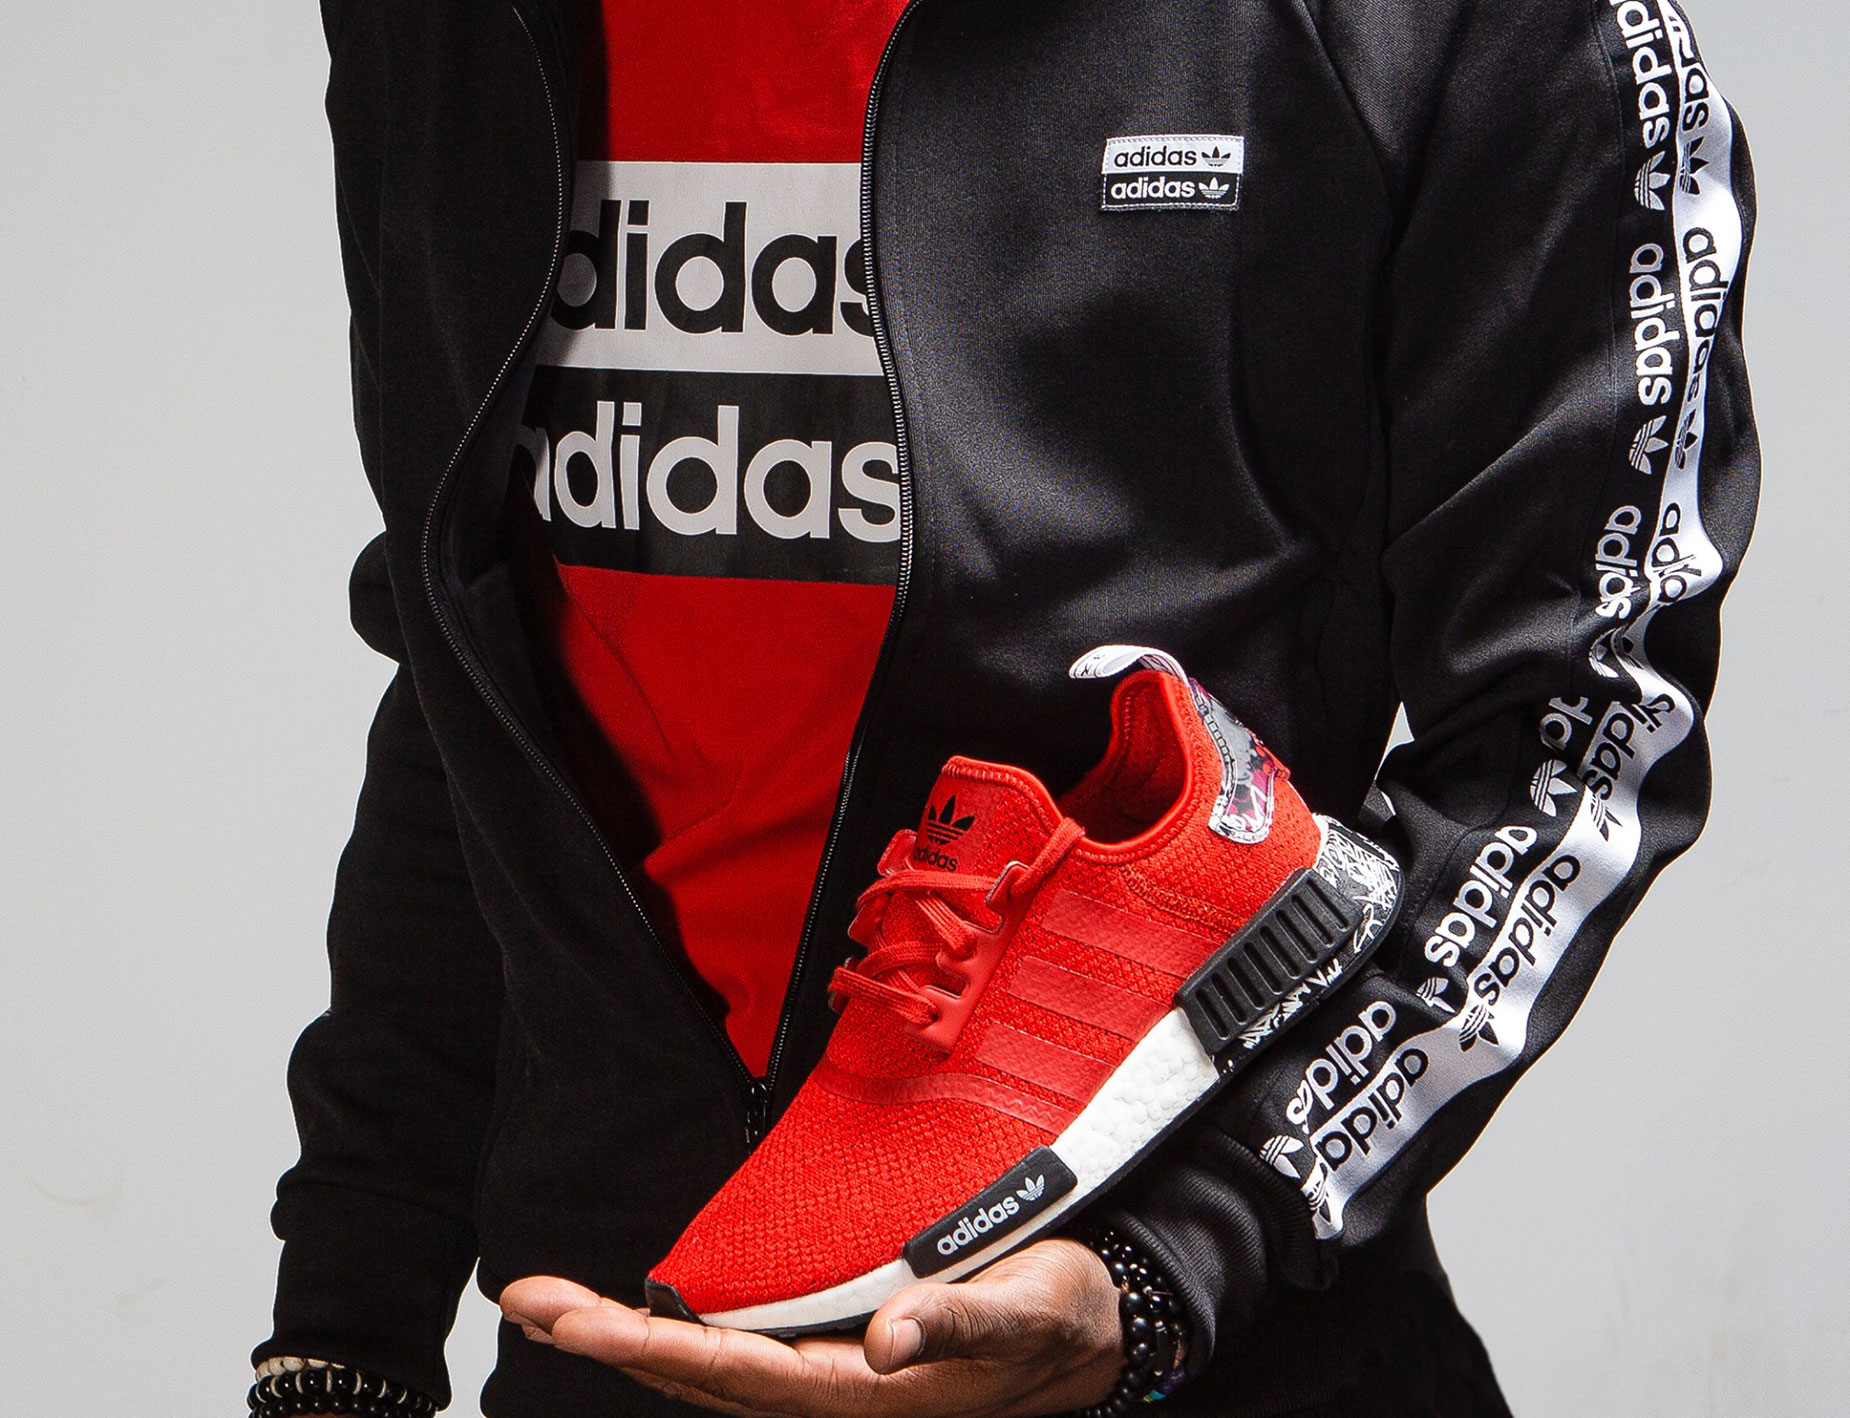 adidas-nmd-graffiti-shirt-jacket-match